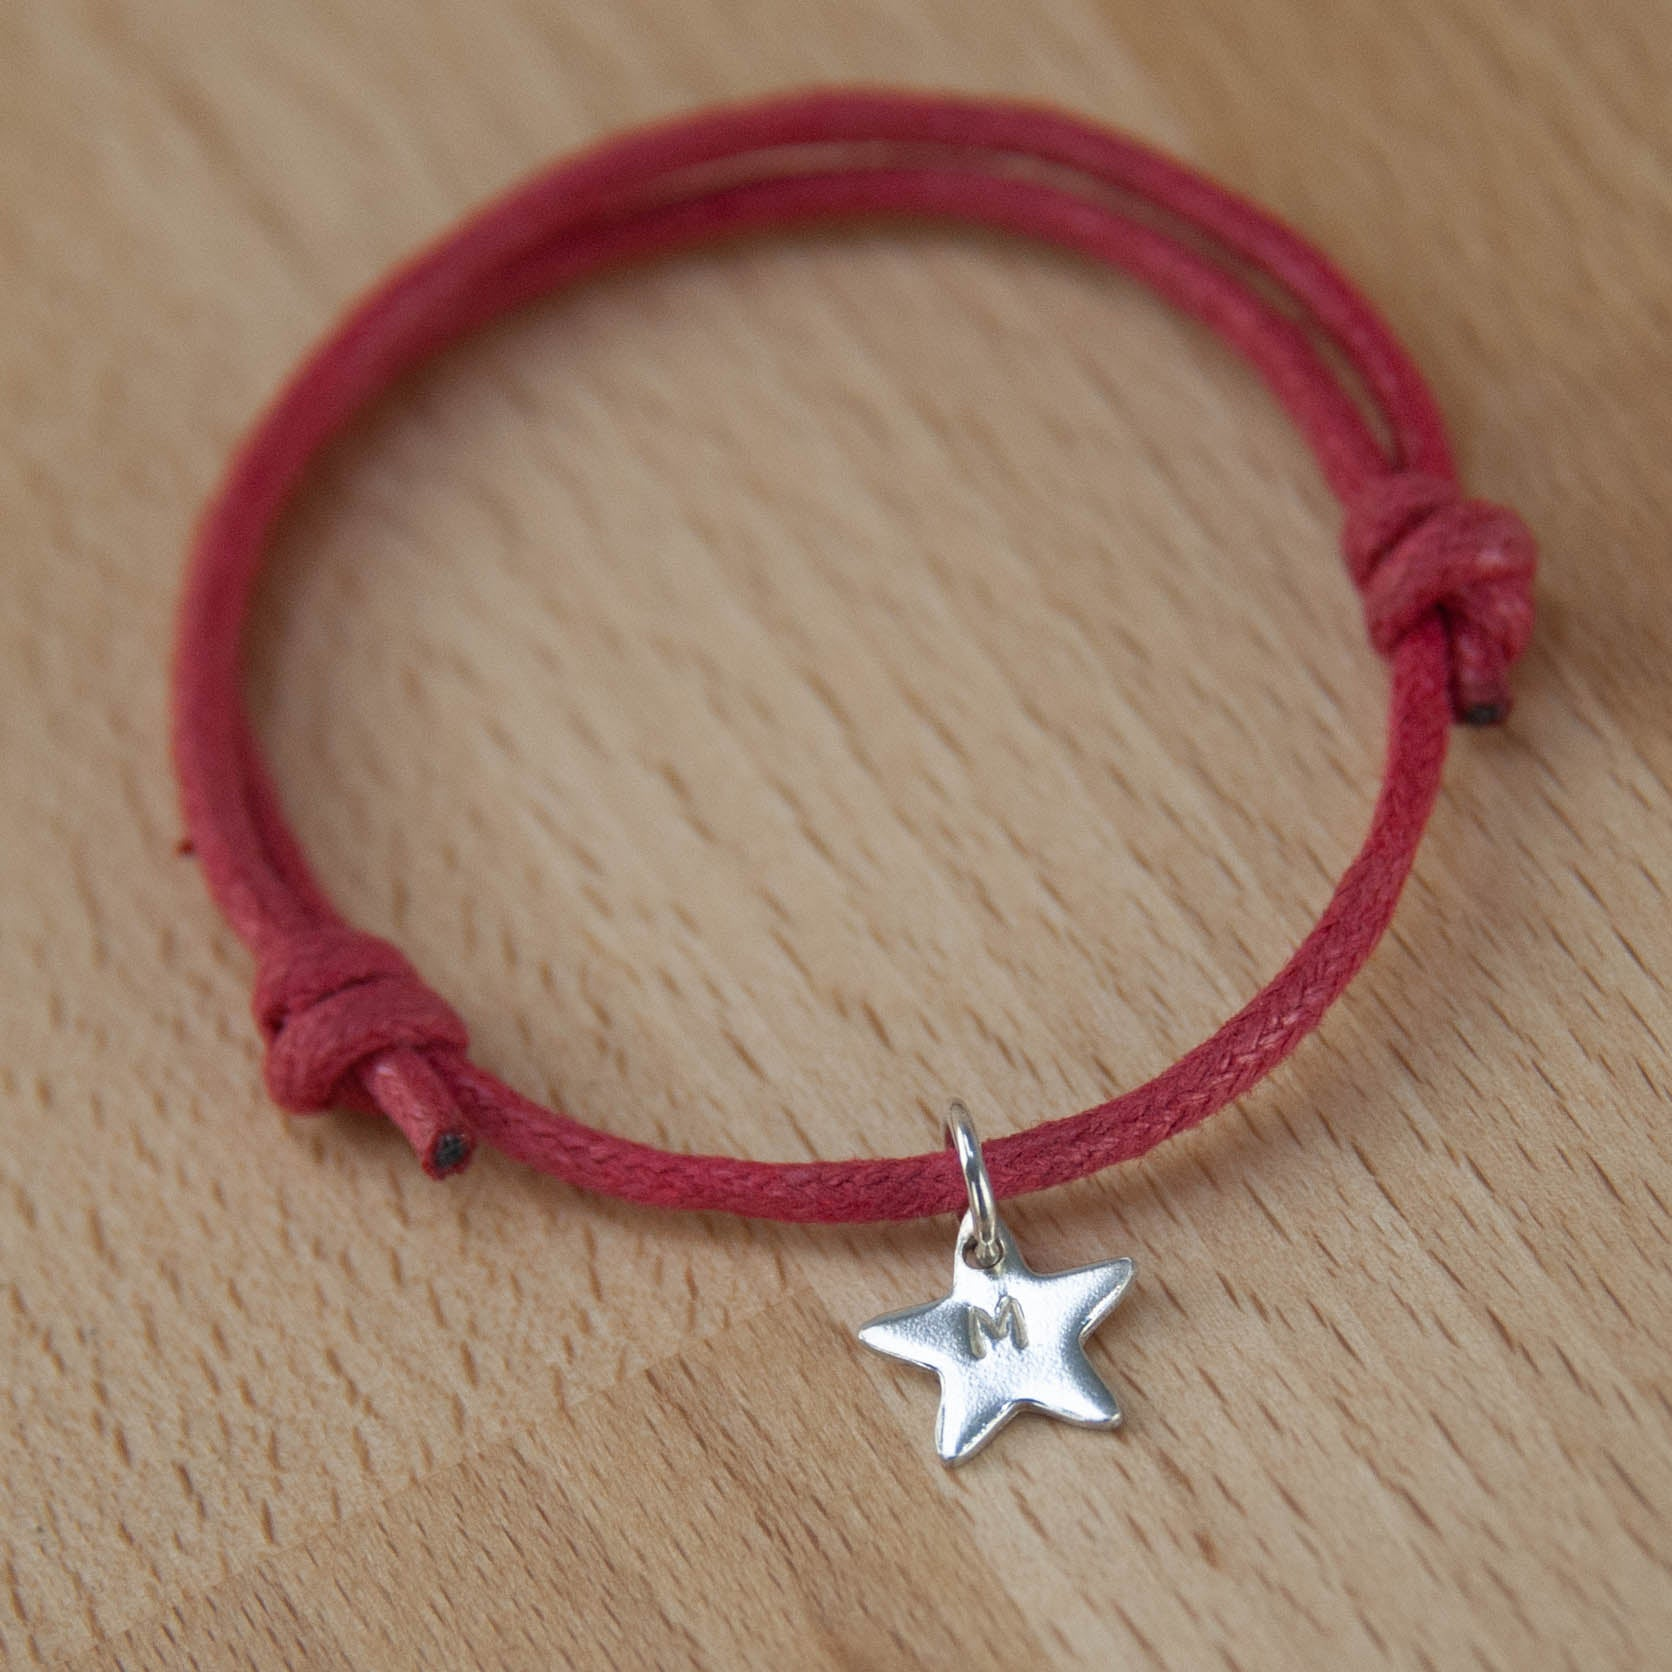 Rope bracelet with Sterling Silver Heart, Star, Disc or Puzzle Piece Charm